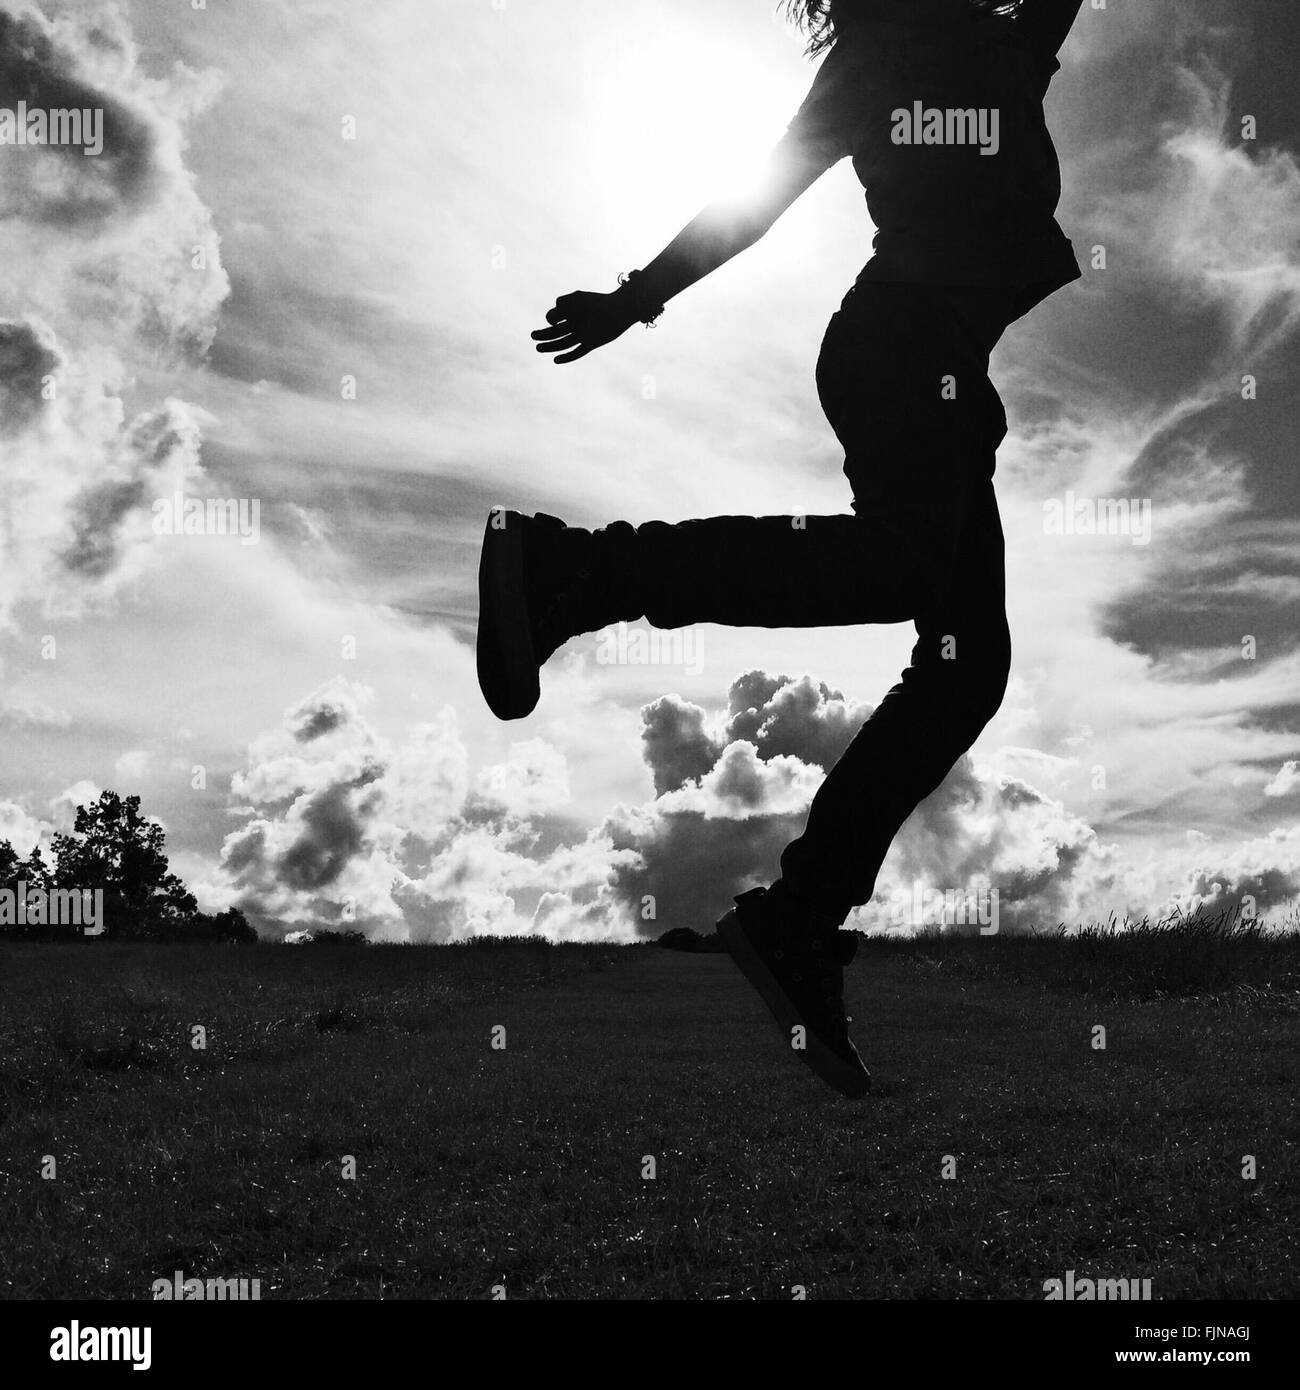 Silhouette Low Section Of Girl Jumping On Landscape Against Sky - Stock Image